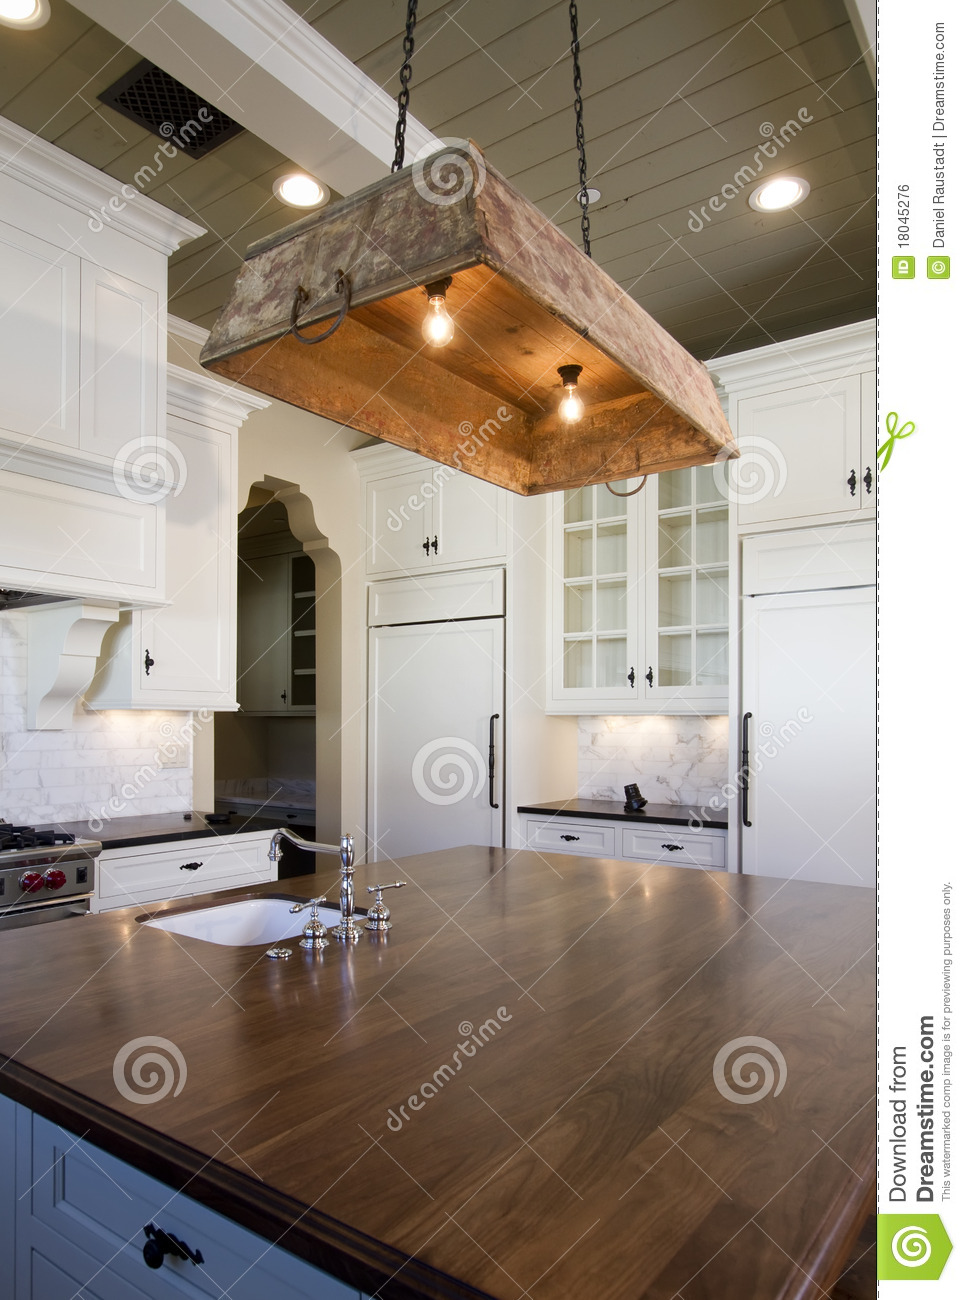 Cottage Style Home White Kitchen Royalty Free Stock Image